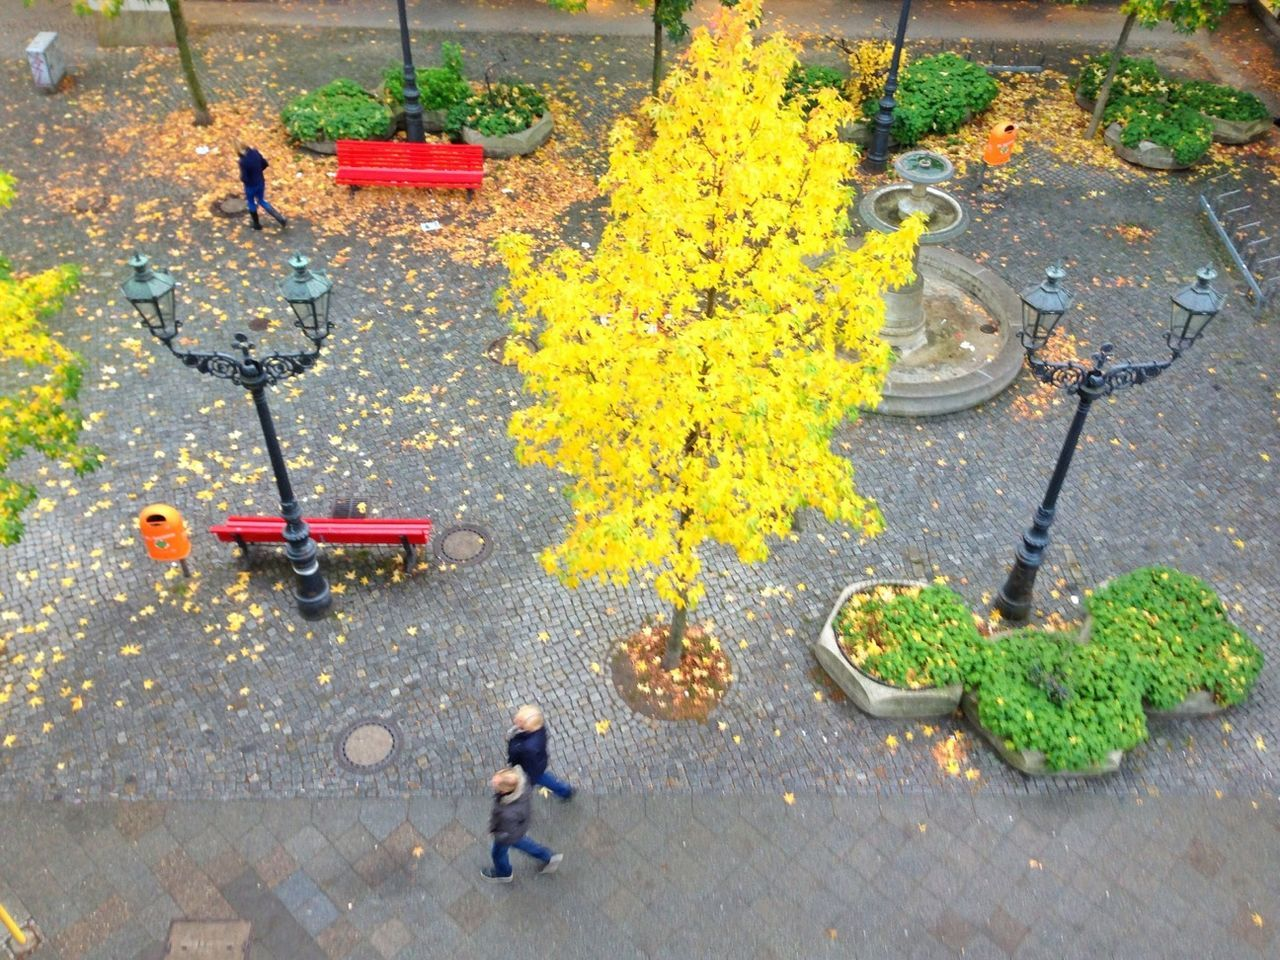 autumn, leaf, high angle view, street, outdoors, change, day, flower, sidewalk, plant, no people, nature, maple leaf, childhood, beauty in nature